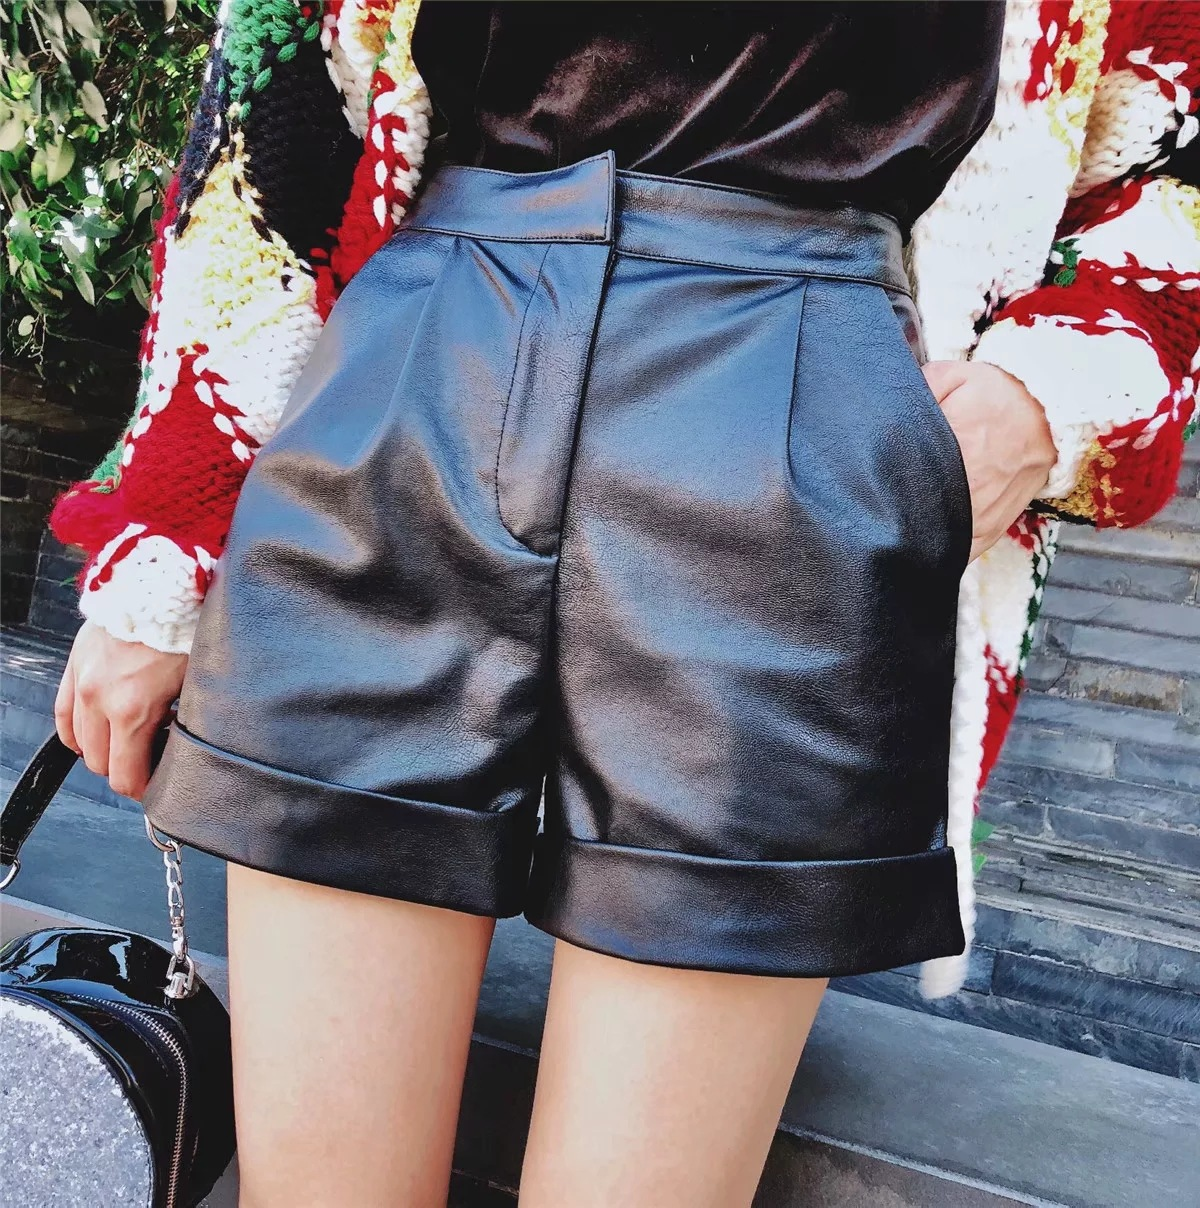 2019 Spring New Arrival Simple European & American Style Zipper Pu Leather Shorts 2 Colors Available Free Shipping